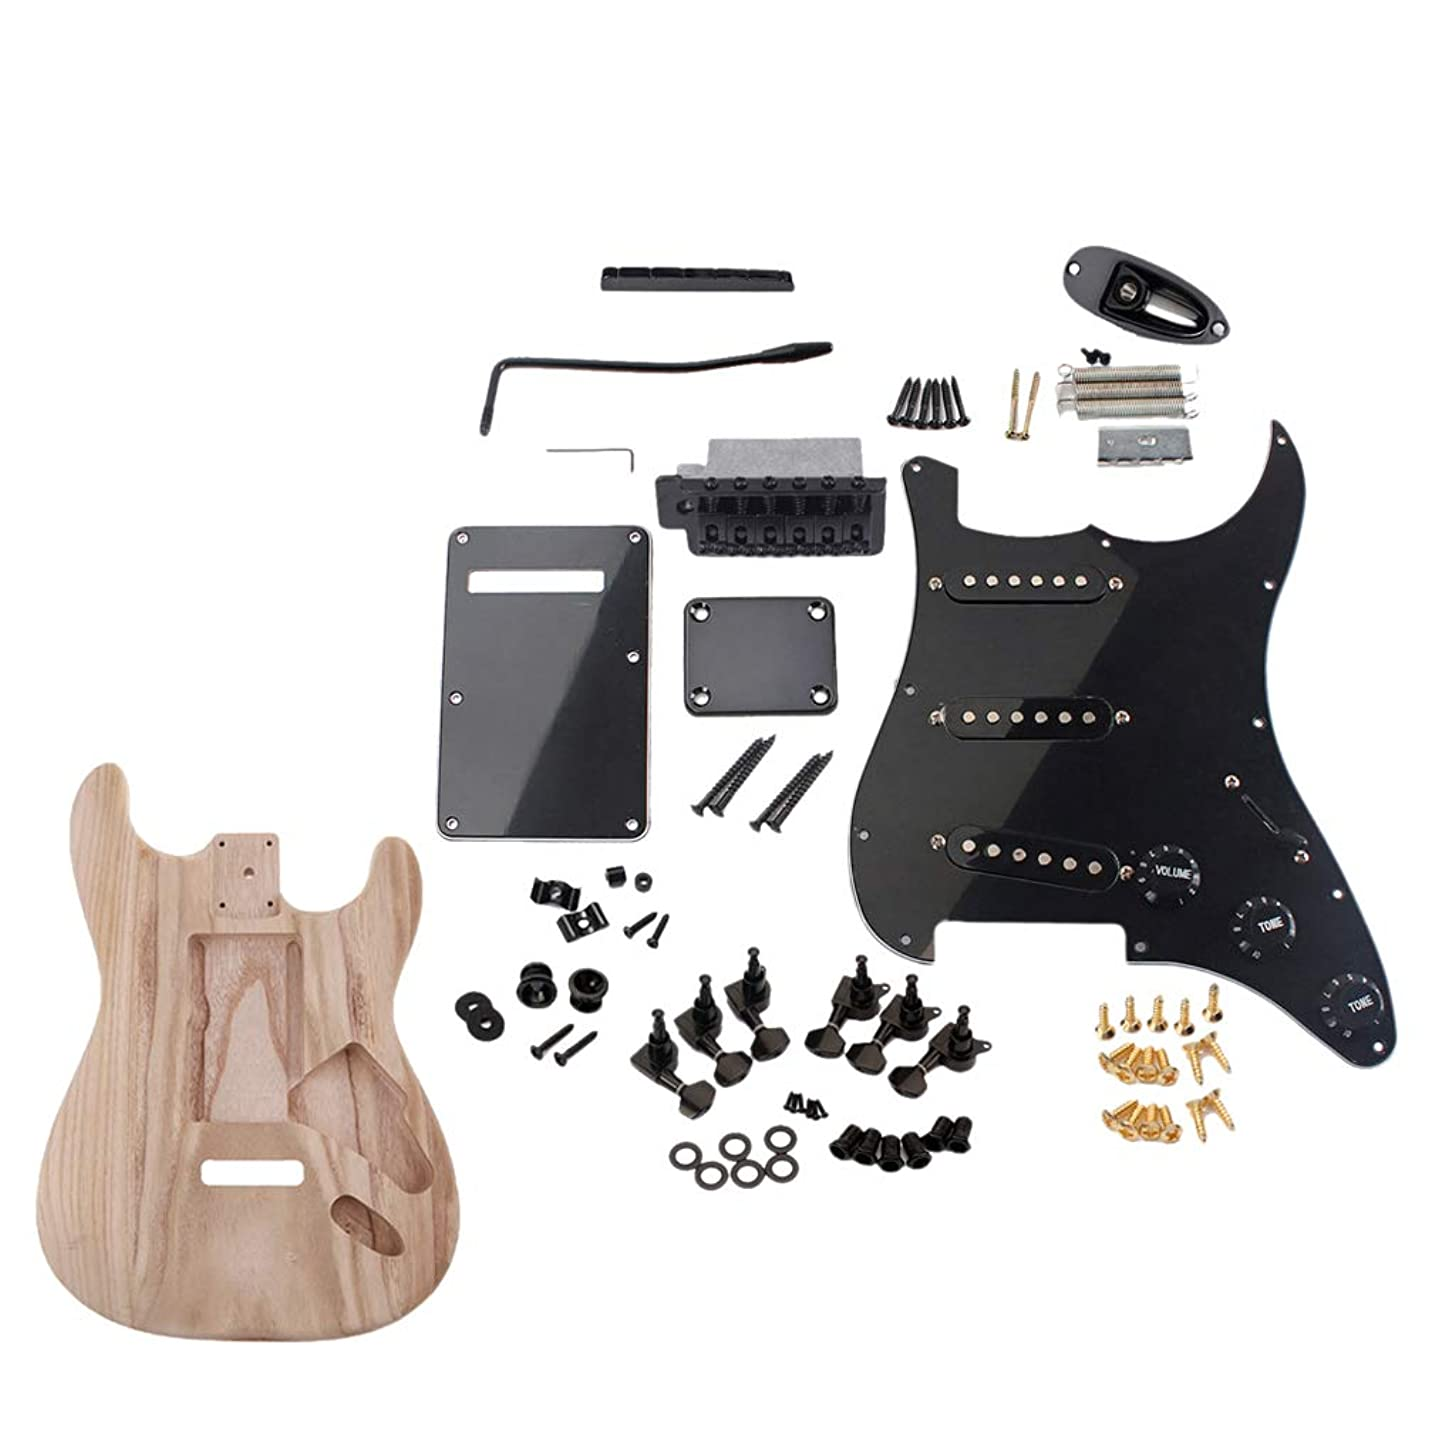 CUTICATE Exquisite Wood Electric Guitar Blank Body with Plastic 3-ply Pickguard Backplate Tuning Pegs Nut Jack Plate Screws Neck Plate Luthier Tools